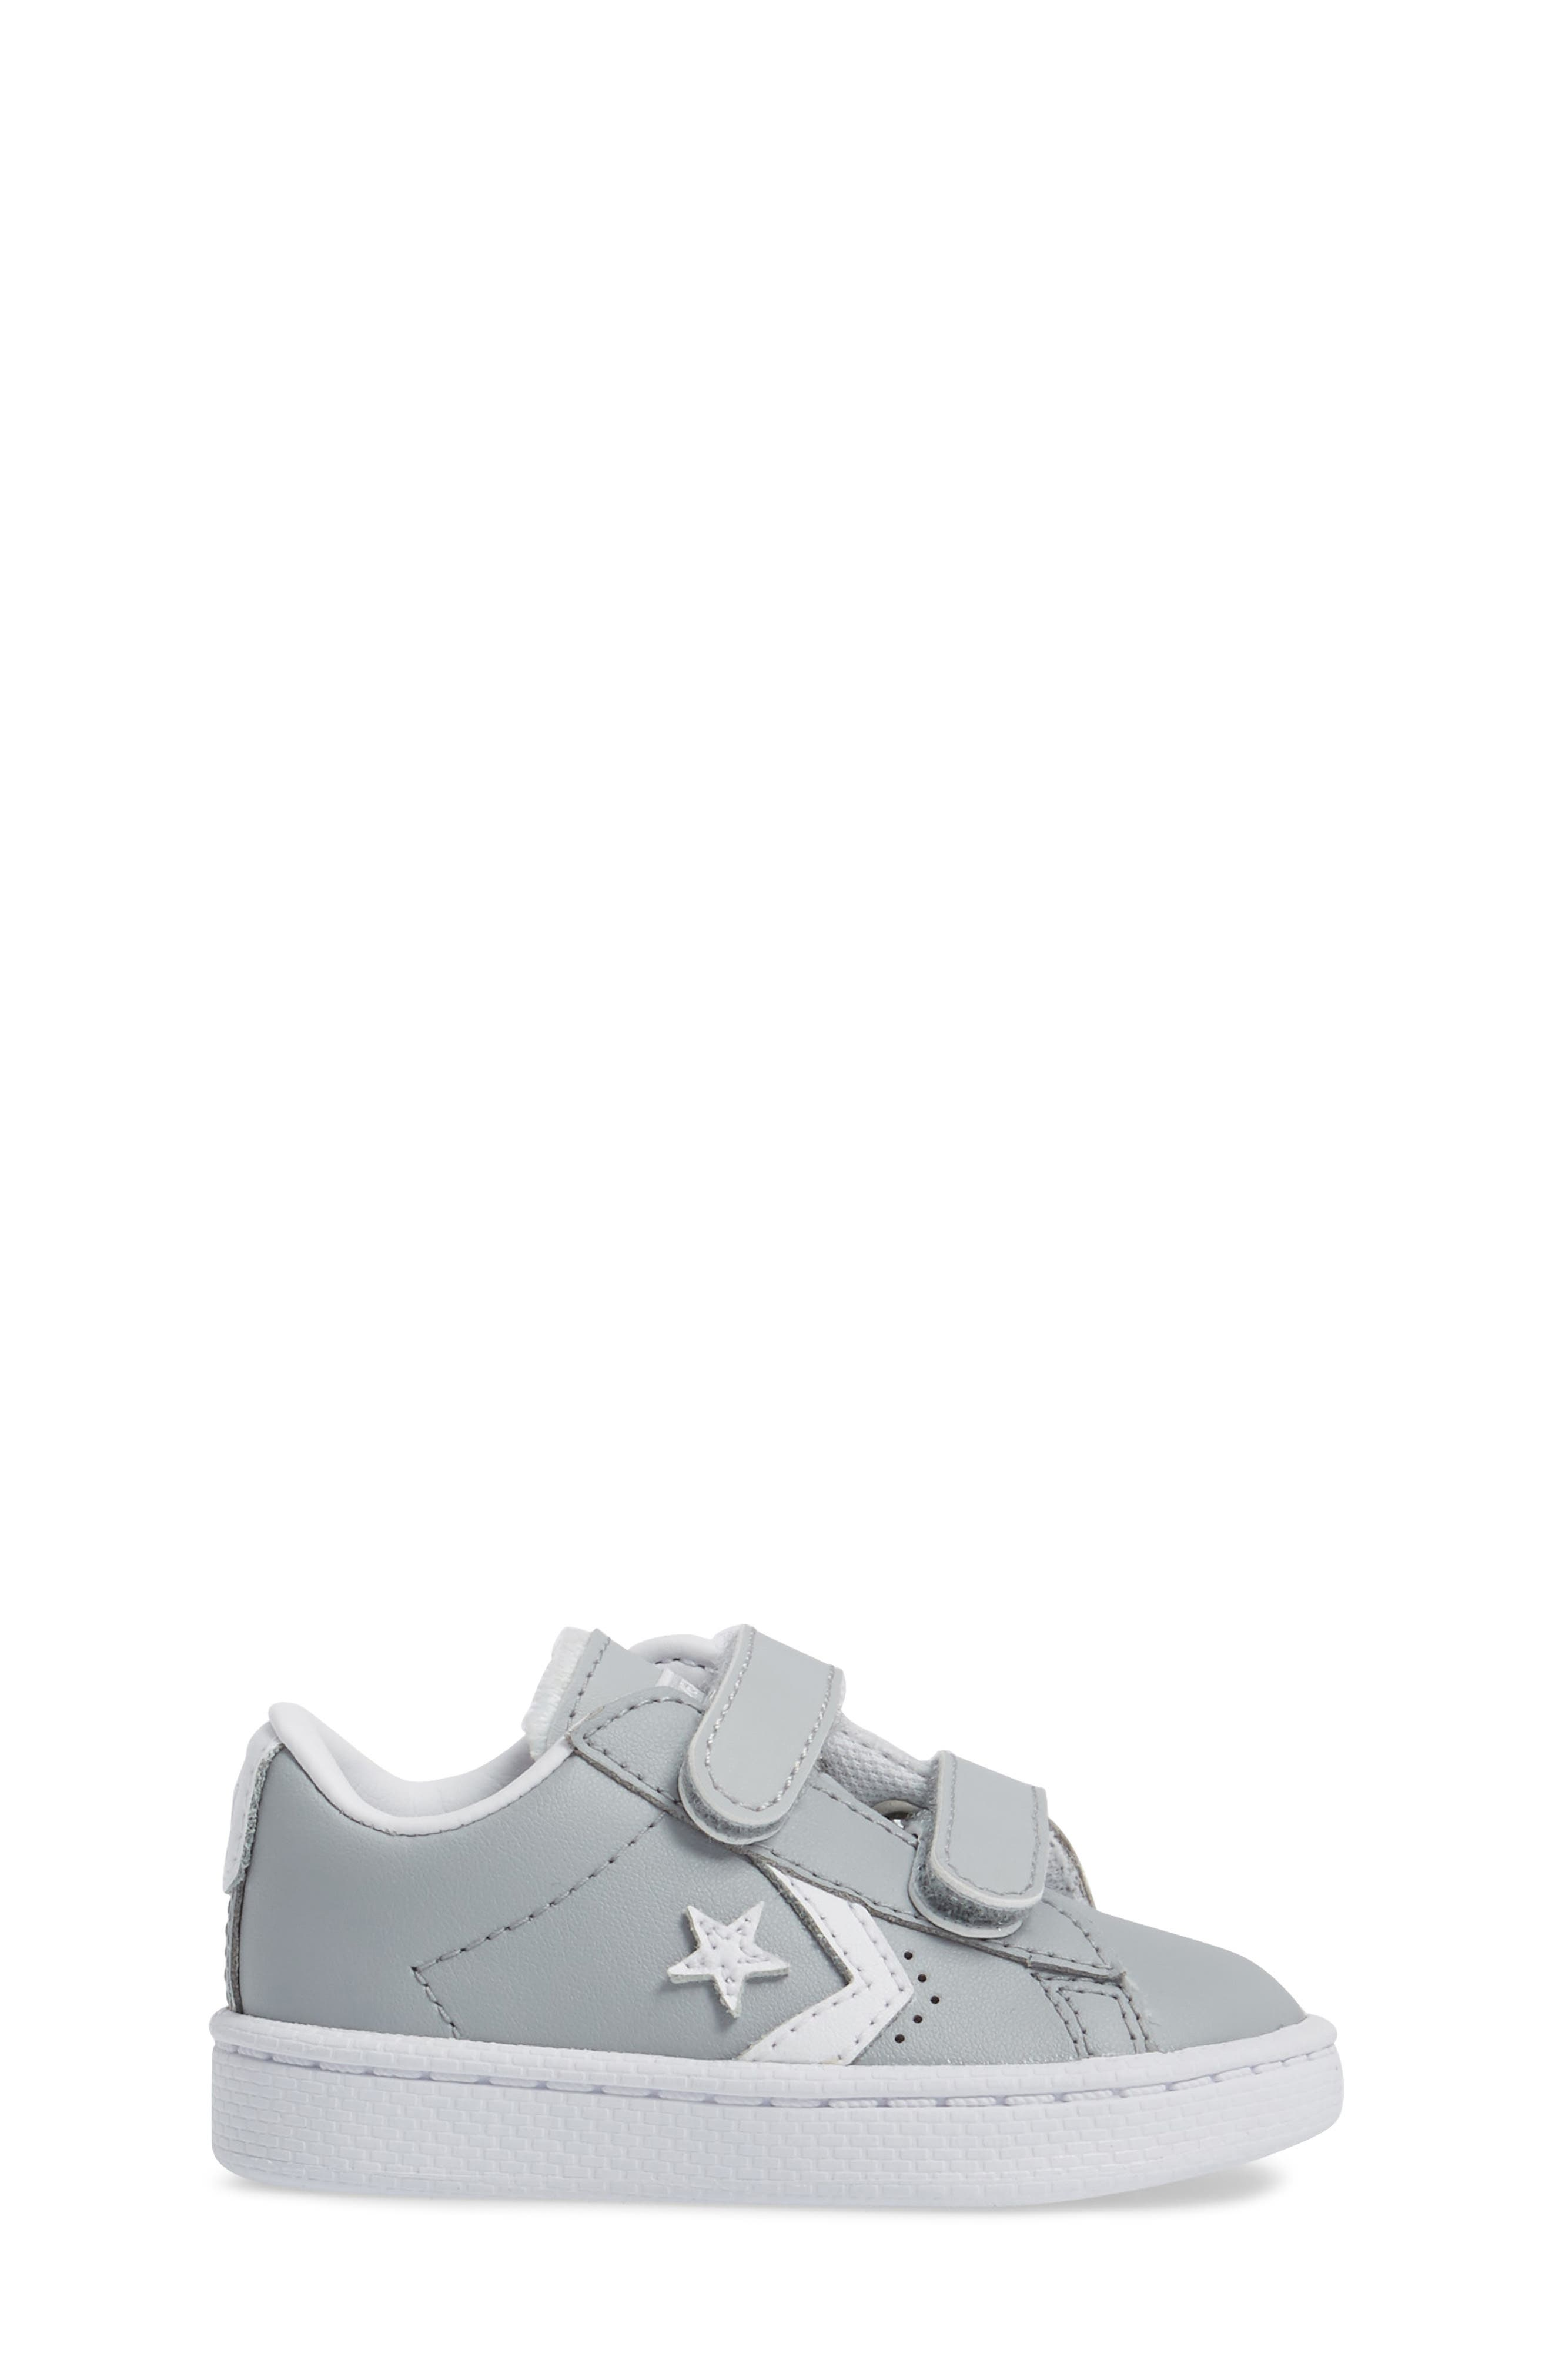 Pro Leather Low Top Sneaker,                             Alternate thumbnail 3, color,                             097